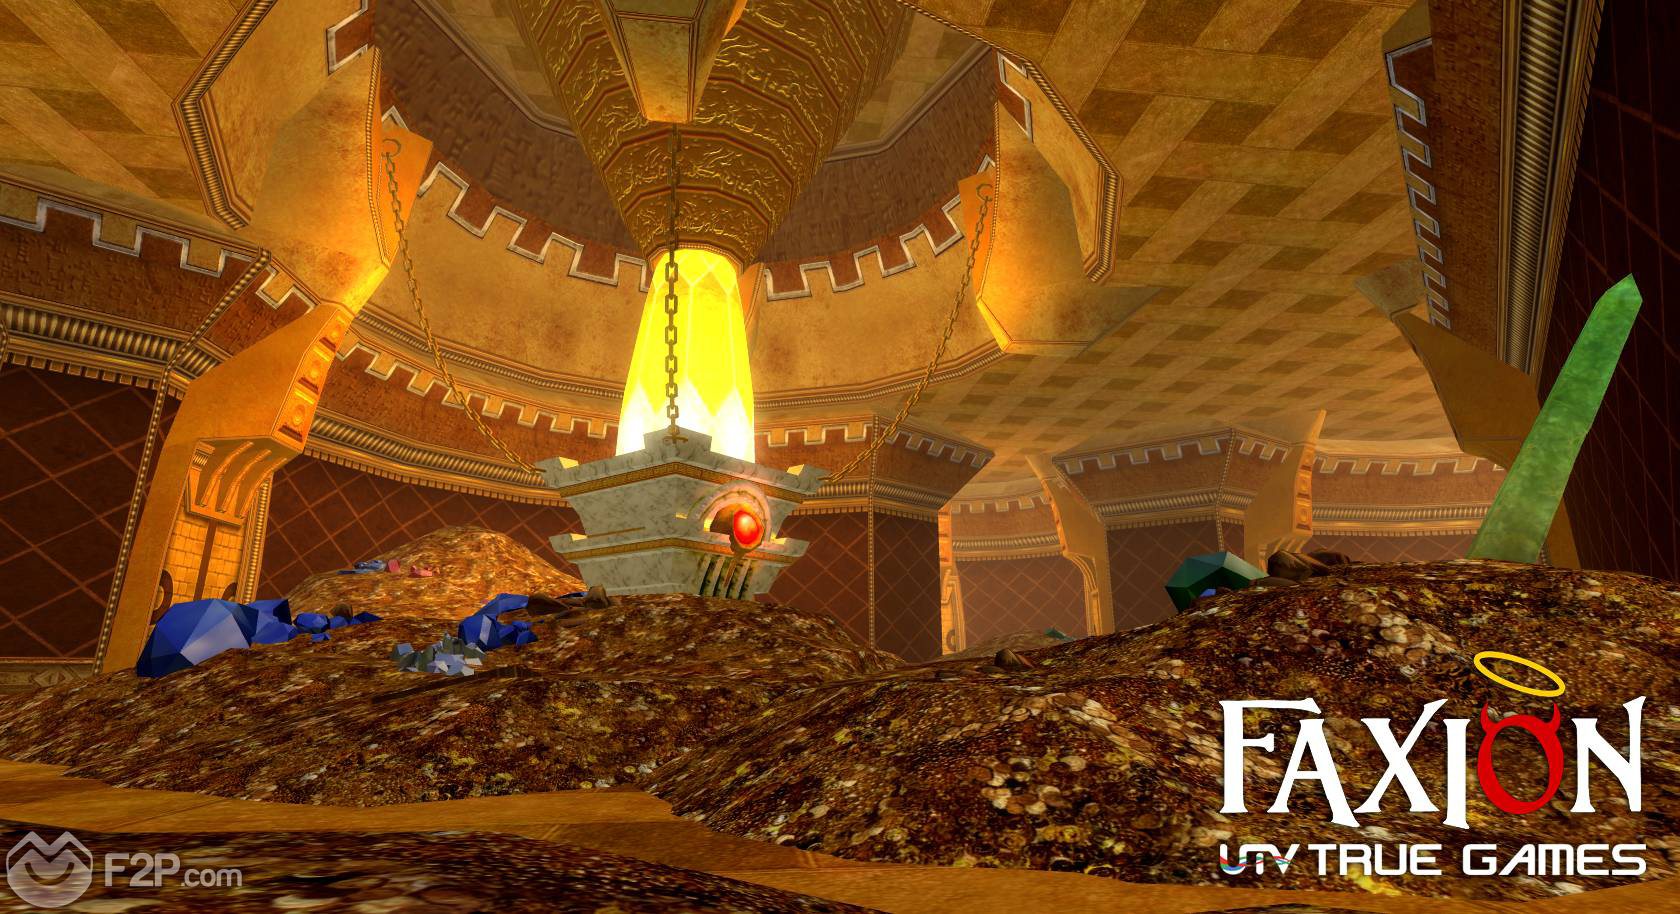 Click image for larger version.Name:Faxion Online 4.jpgViews:67Size:1.05 MBID:3615